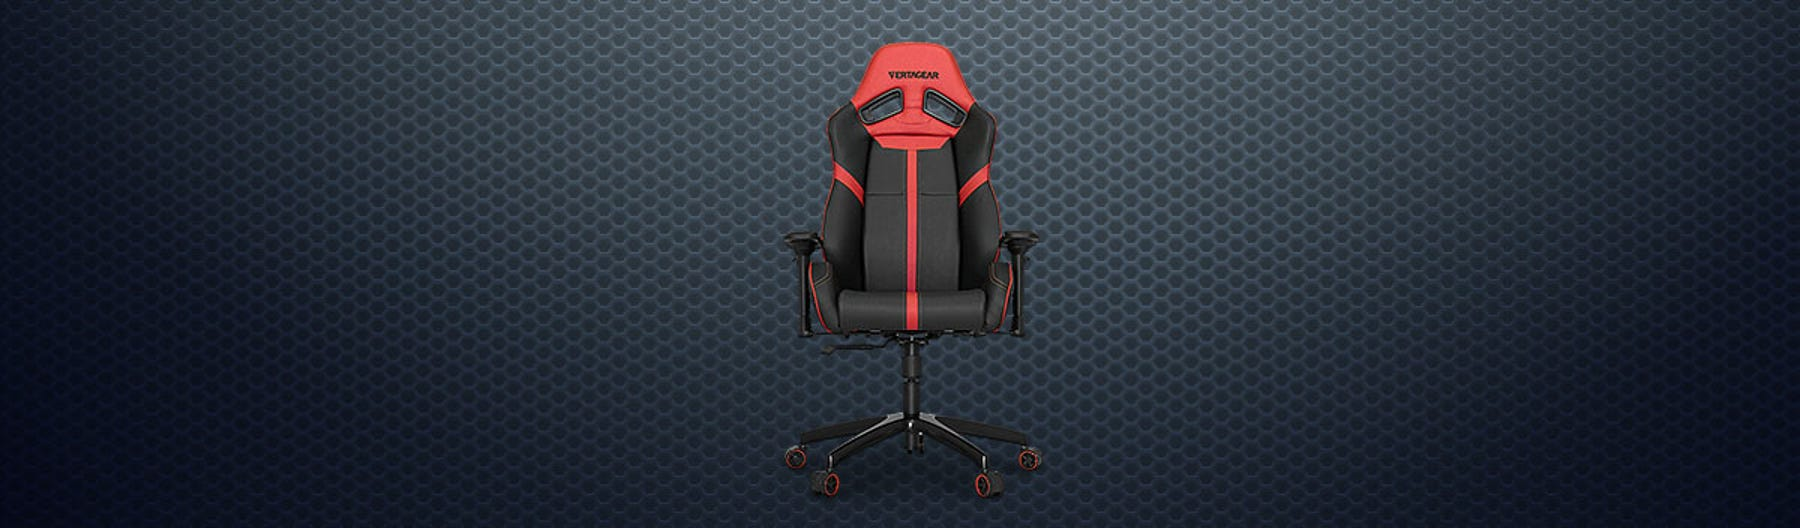 Pleasant Gaming Chairs Computer Video Game Chairs Best Buy Canada Creativecarmelina Interior Chair Design Creativecarmelinacom